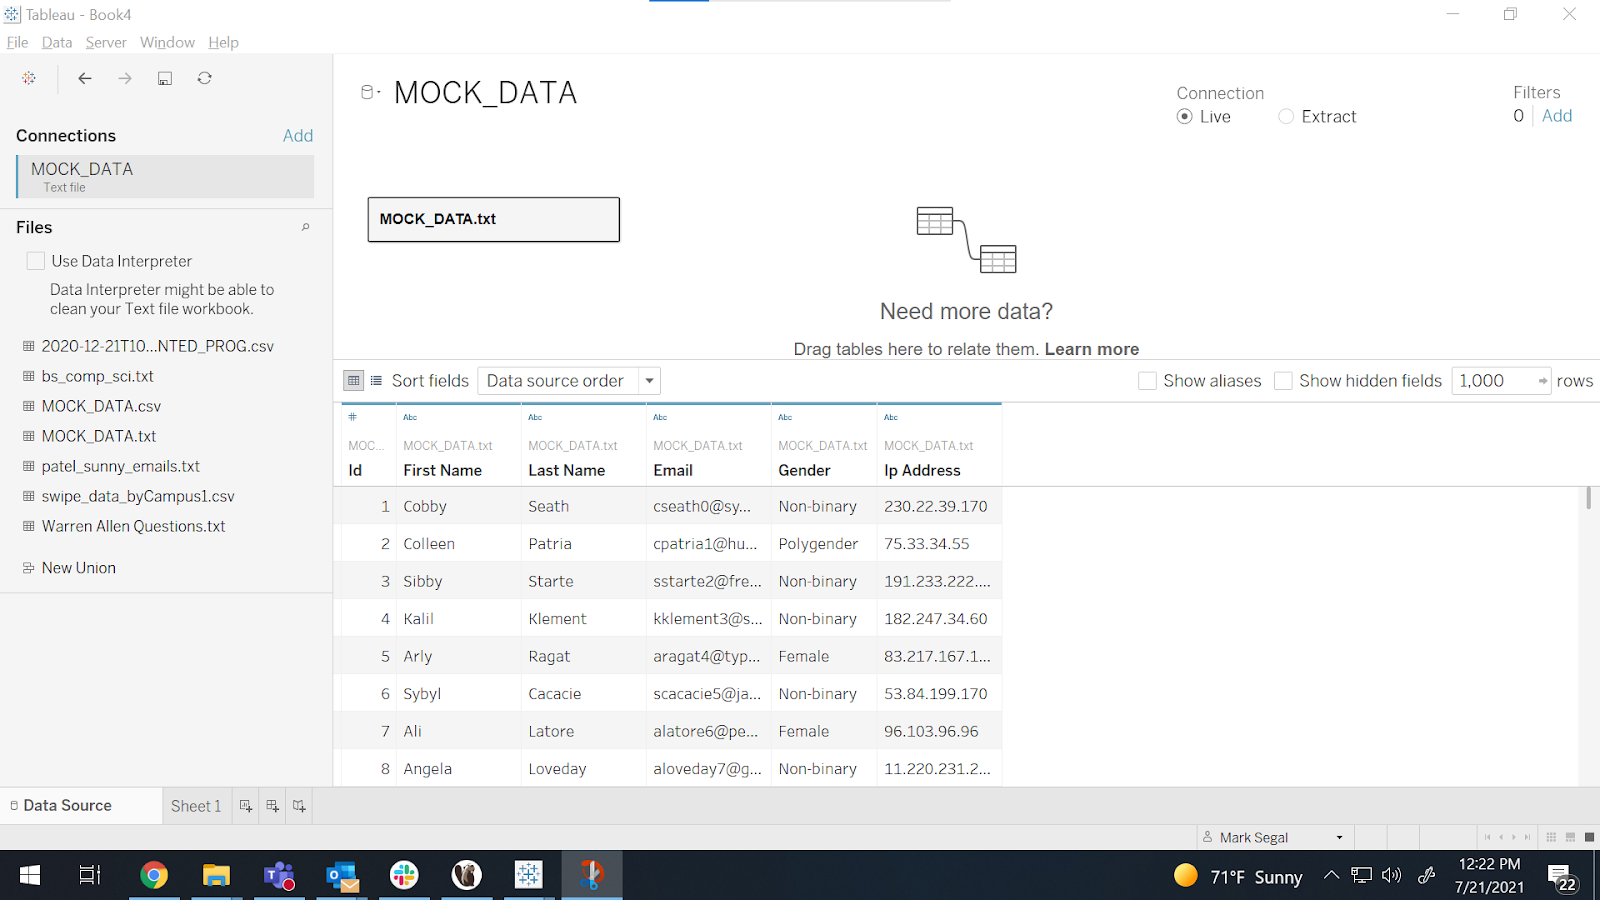 Tableau will bring the text file and all its contents into the 'Data' pane